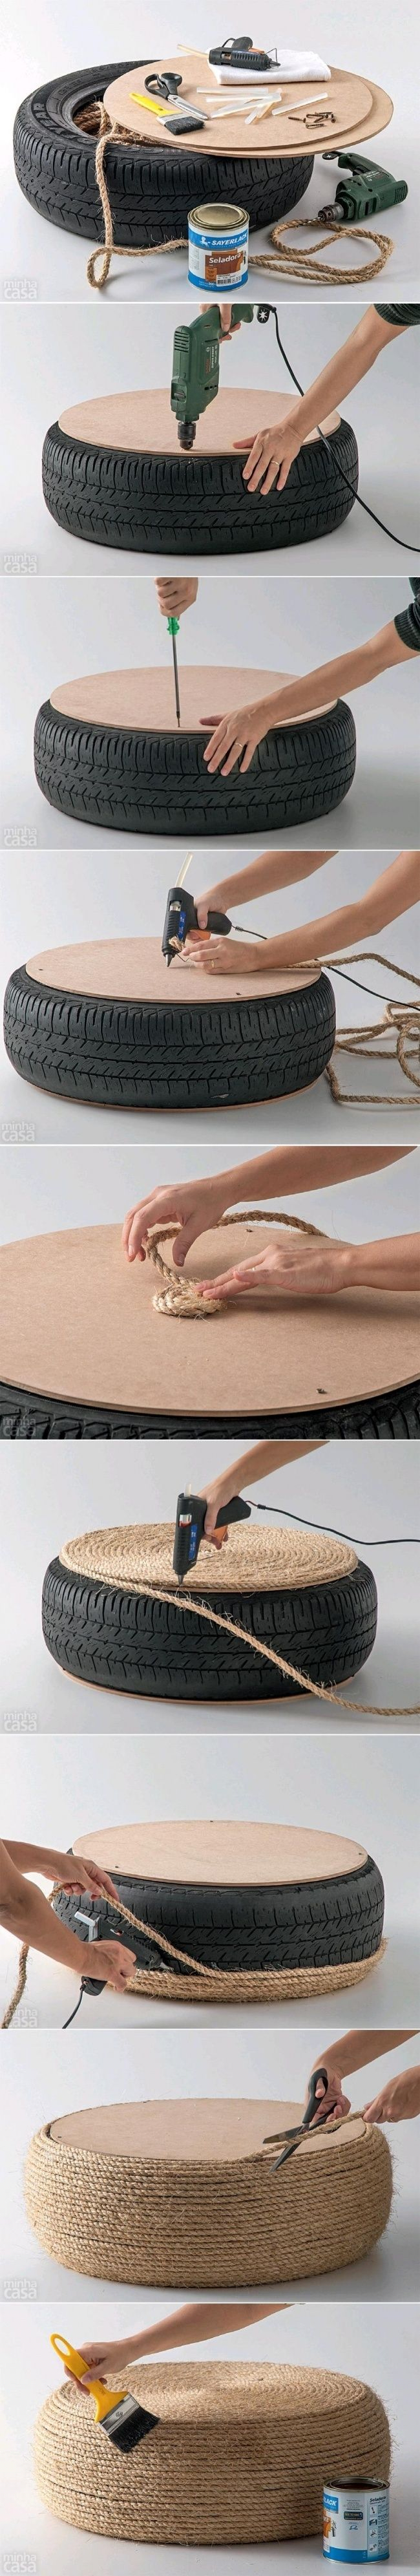 HOW TO: Turn An Old Car Type Into Something Useful